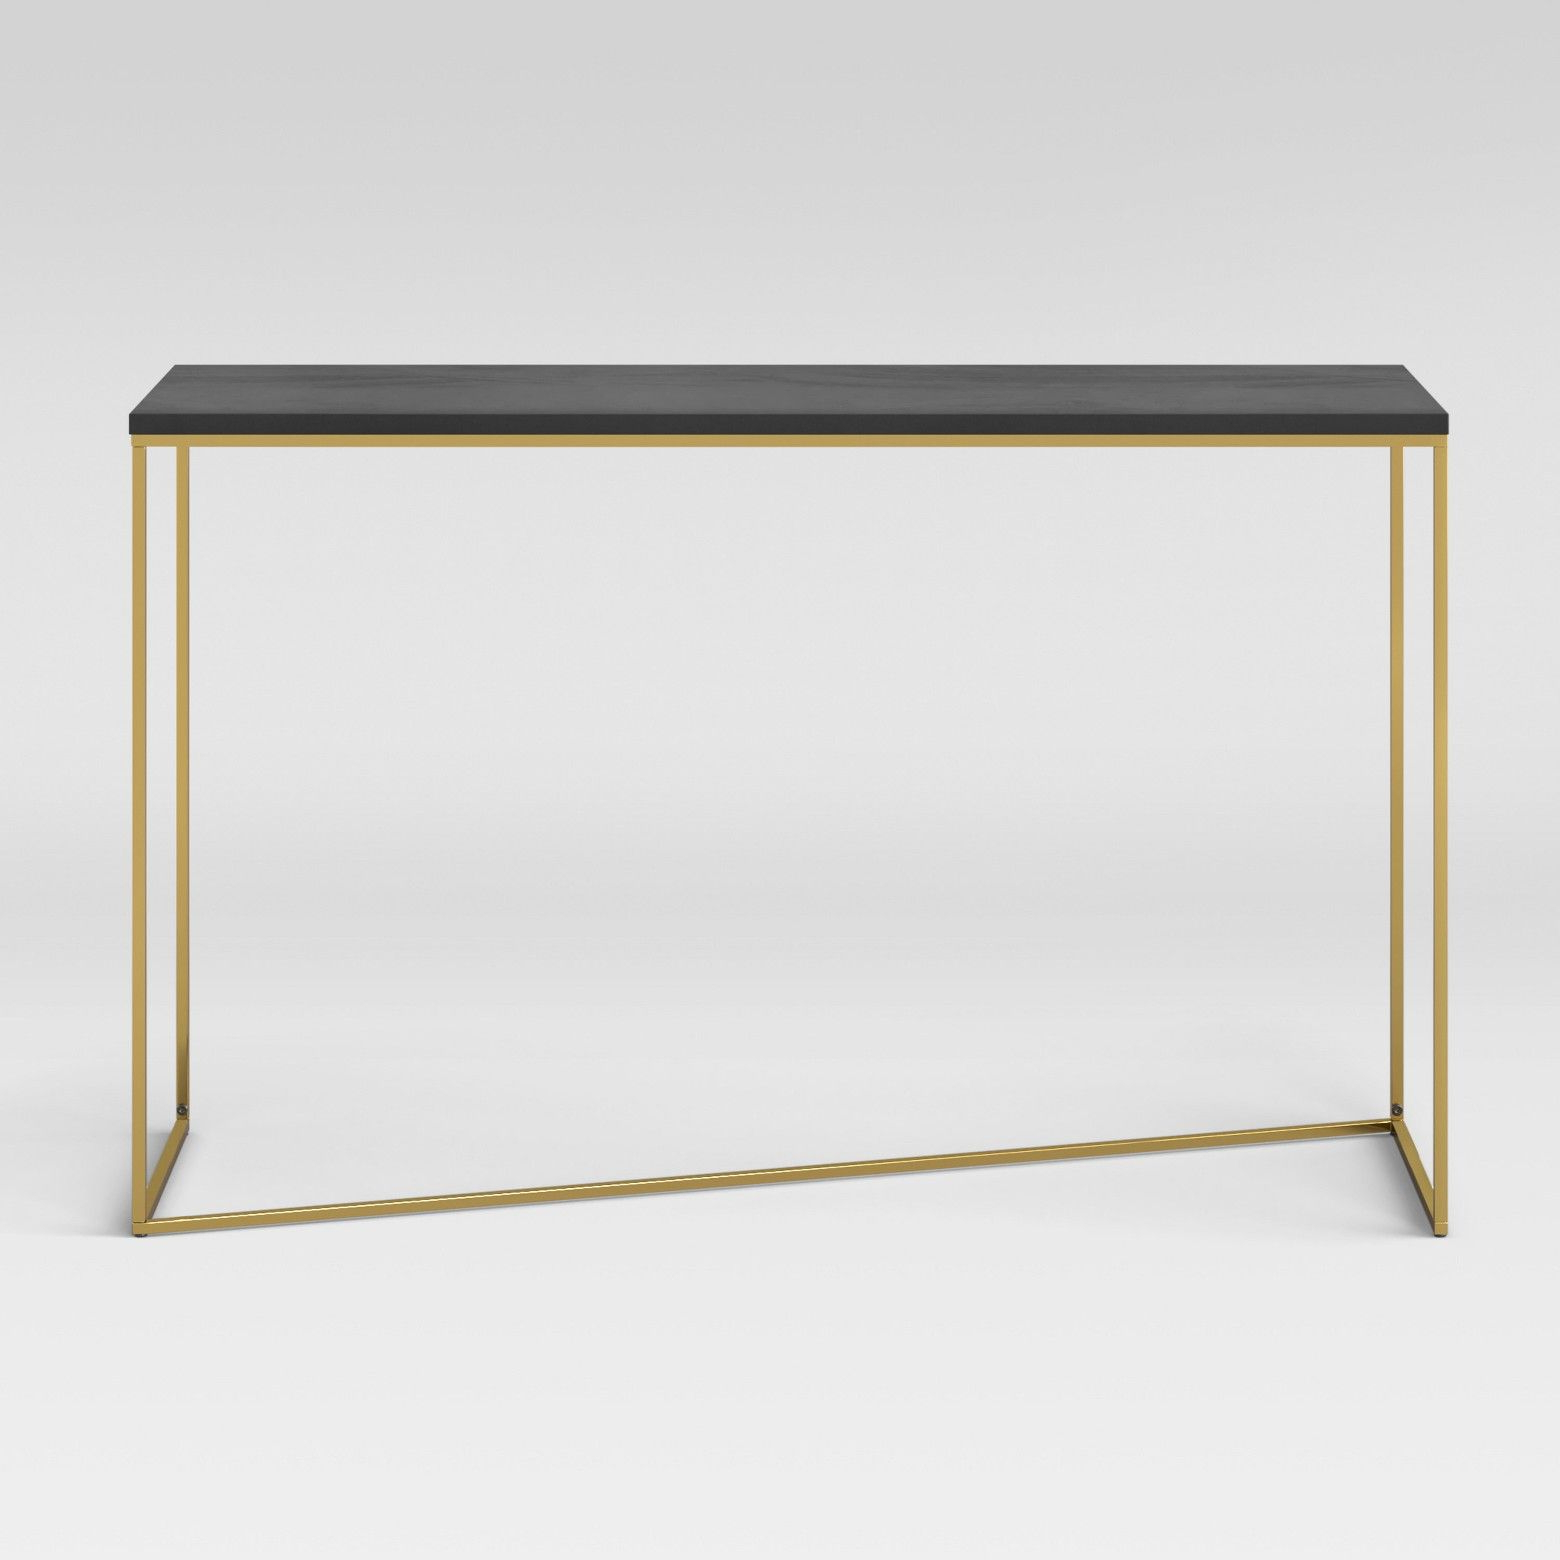 The Sollerod Console Table Brass And Black From Project 62 For Well Known Elke Glass Console Tables With Brass Base (View 19 of 20)